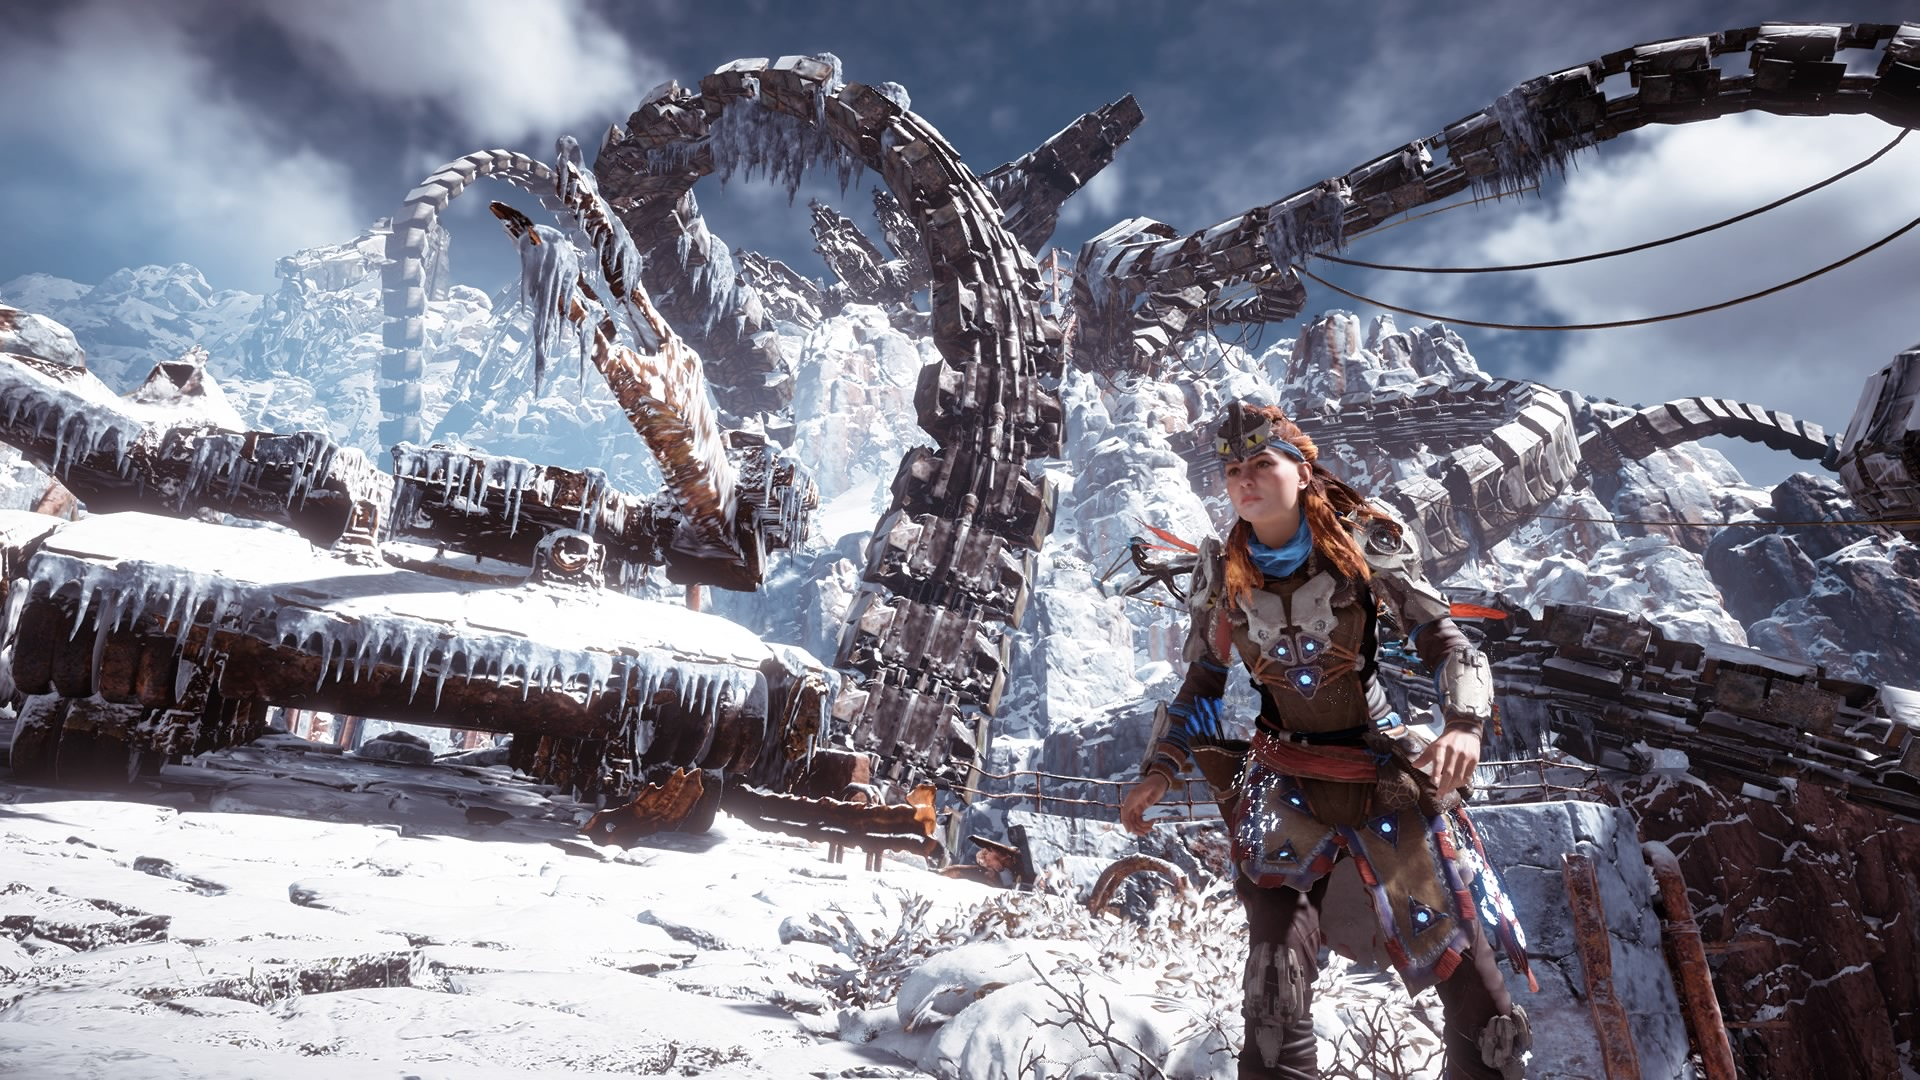 Horizon Zero Dawn Karte Ruinen.Horizon Zero Dawn Liebe Guerillas User Artikel Gamersglobal De